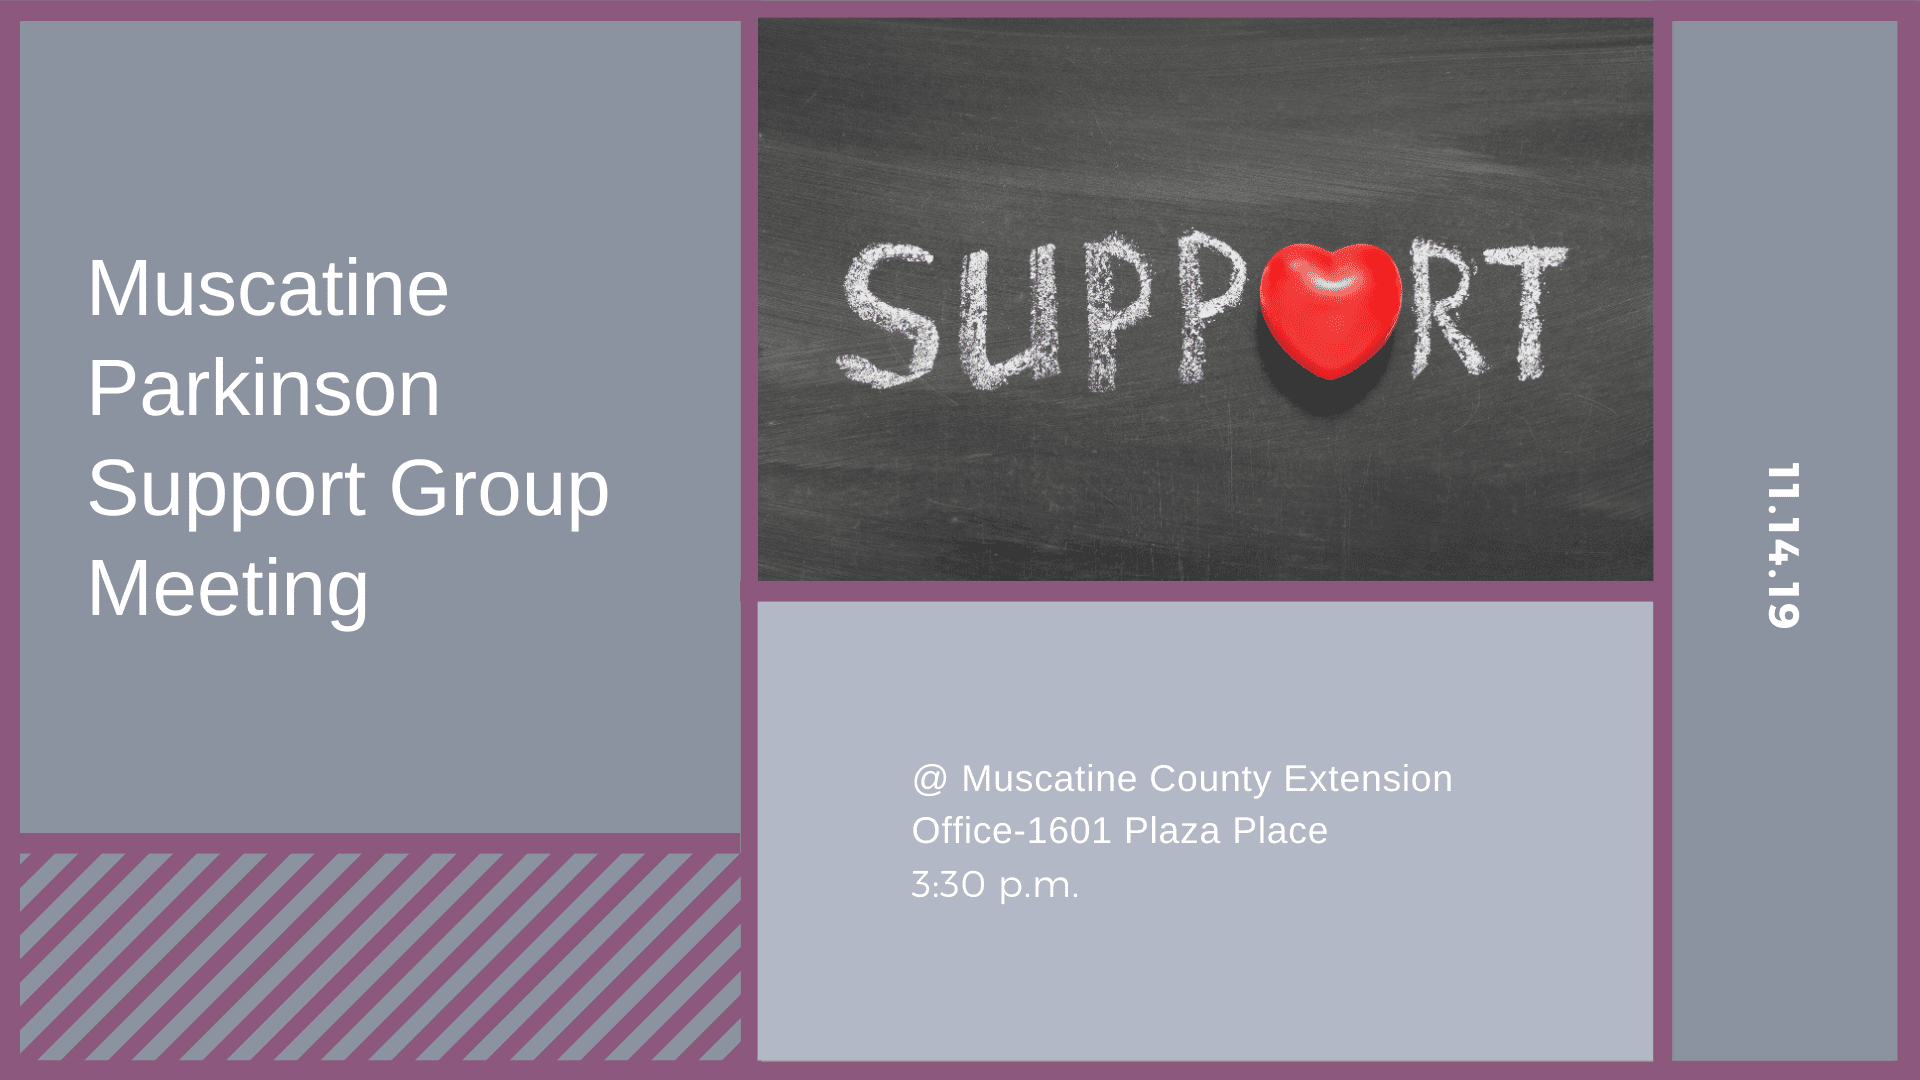 Muscatine Parkinson Support Group Meeting